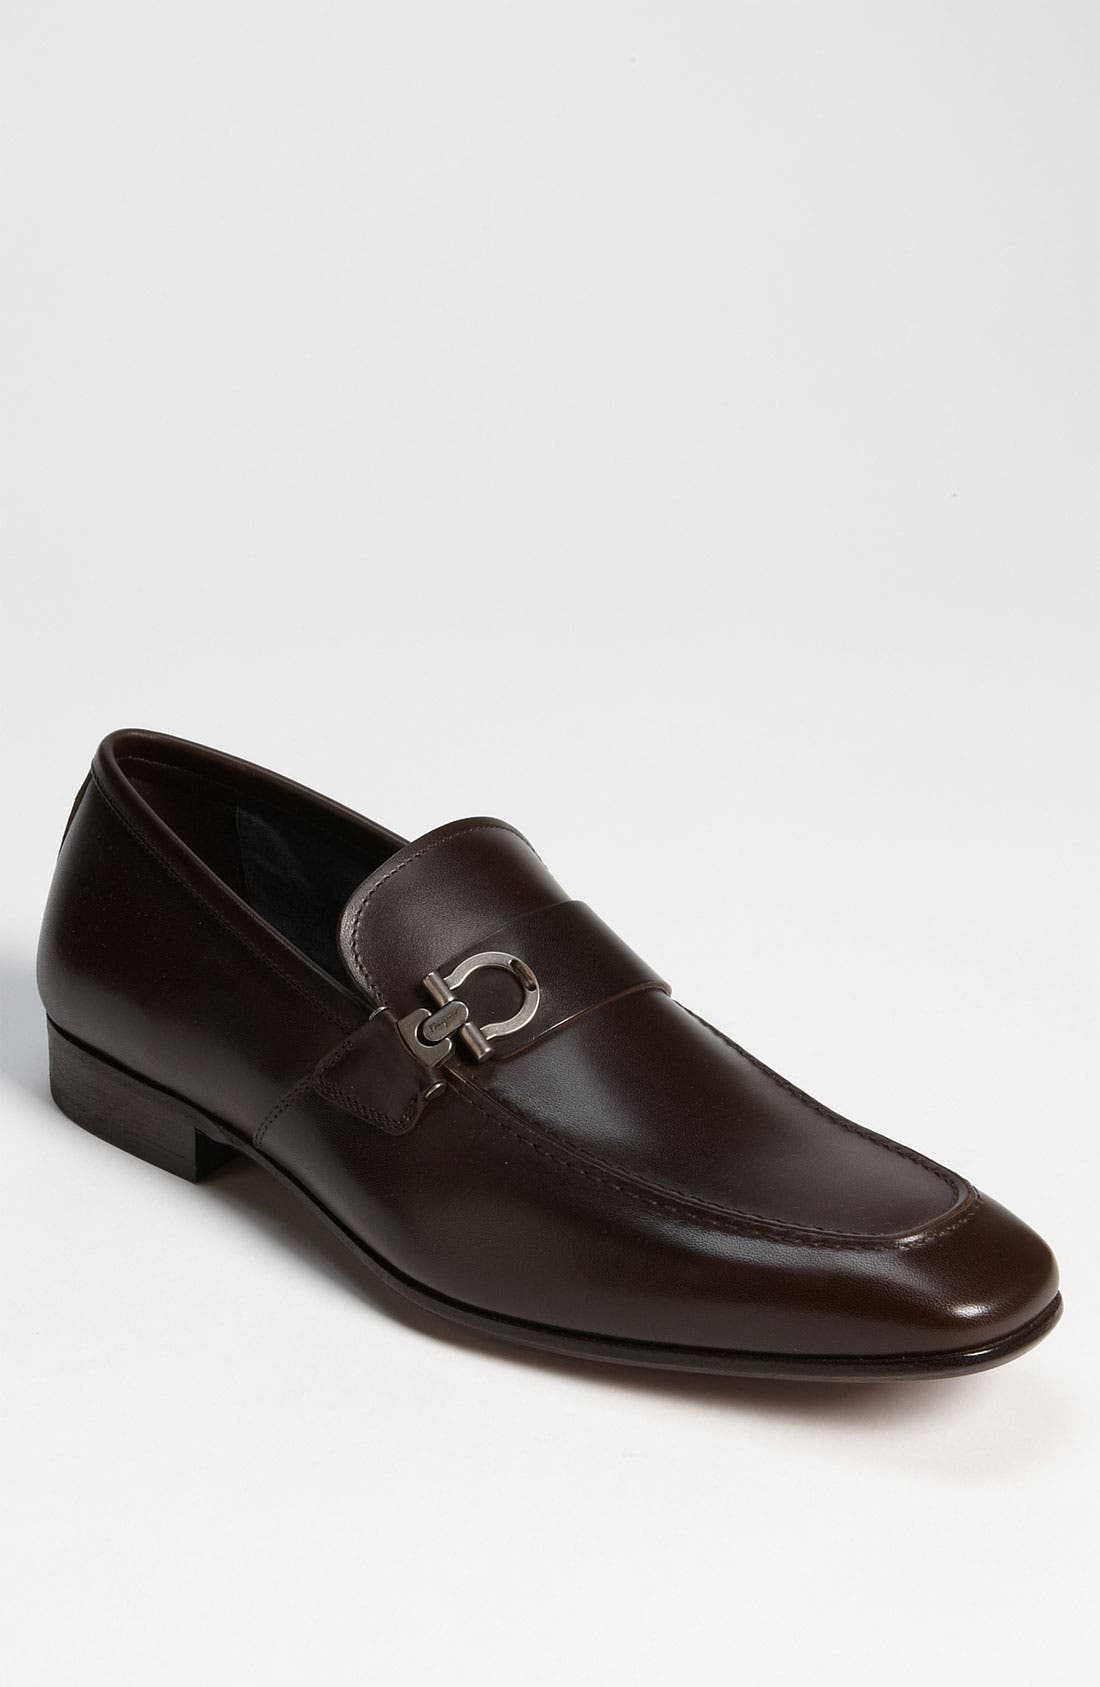 Alternate Image 1 Selected - Salvatore Ferragamo 'Bramante' Loafer